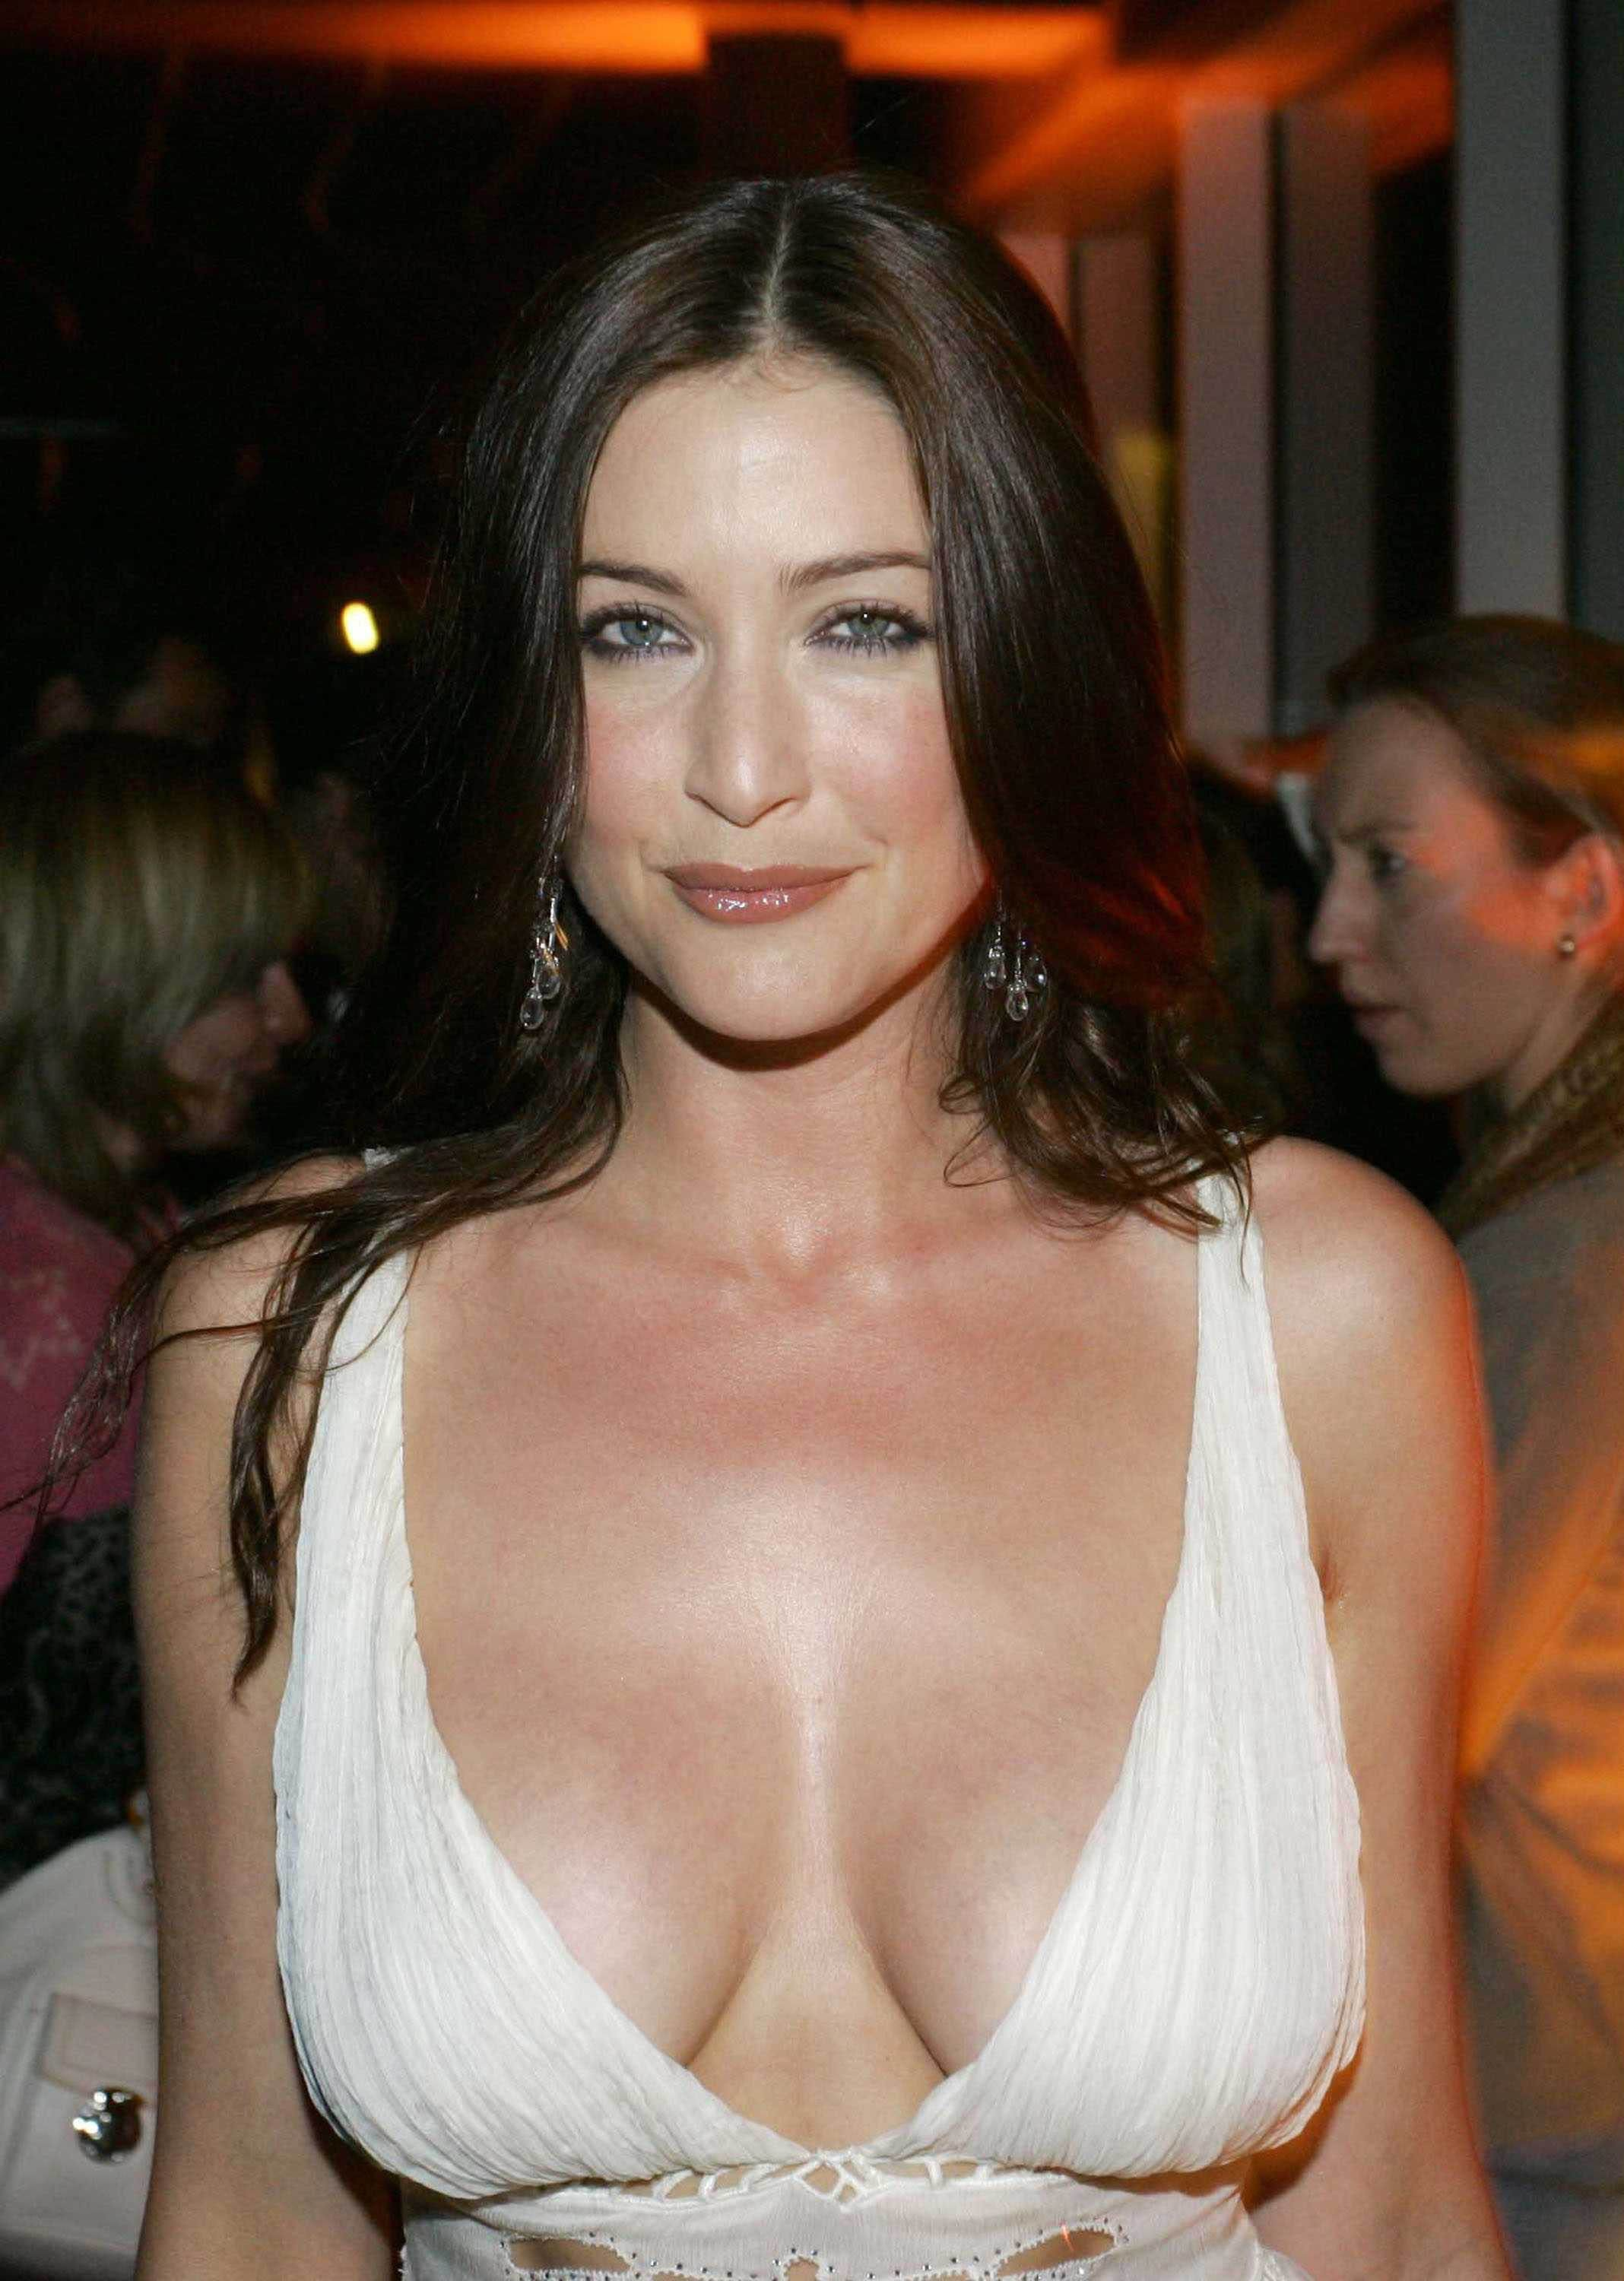 Lisa snowdon naked boobs, negroes fuckin sexy